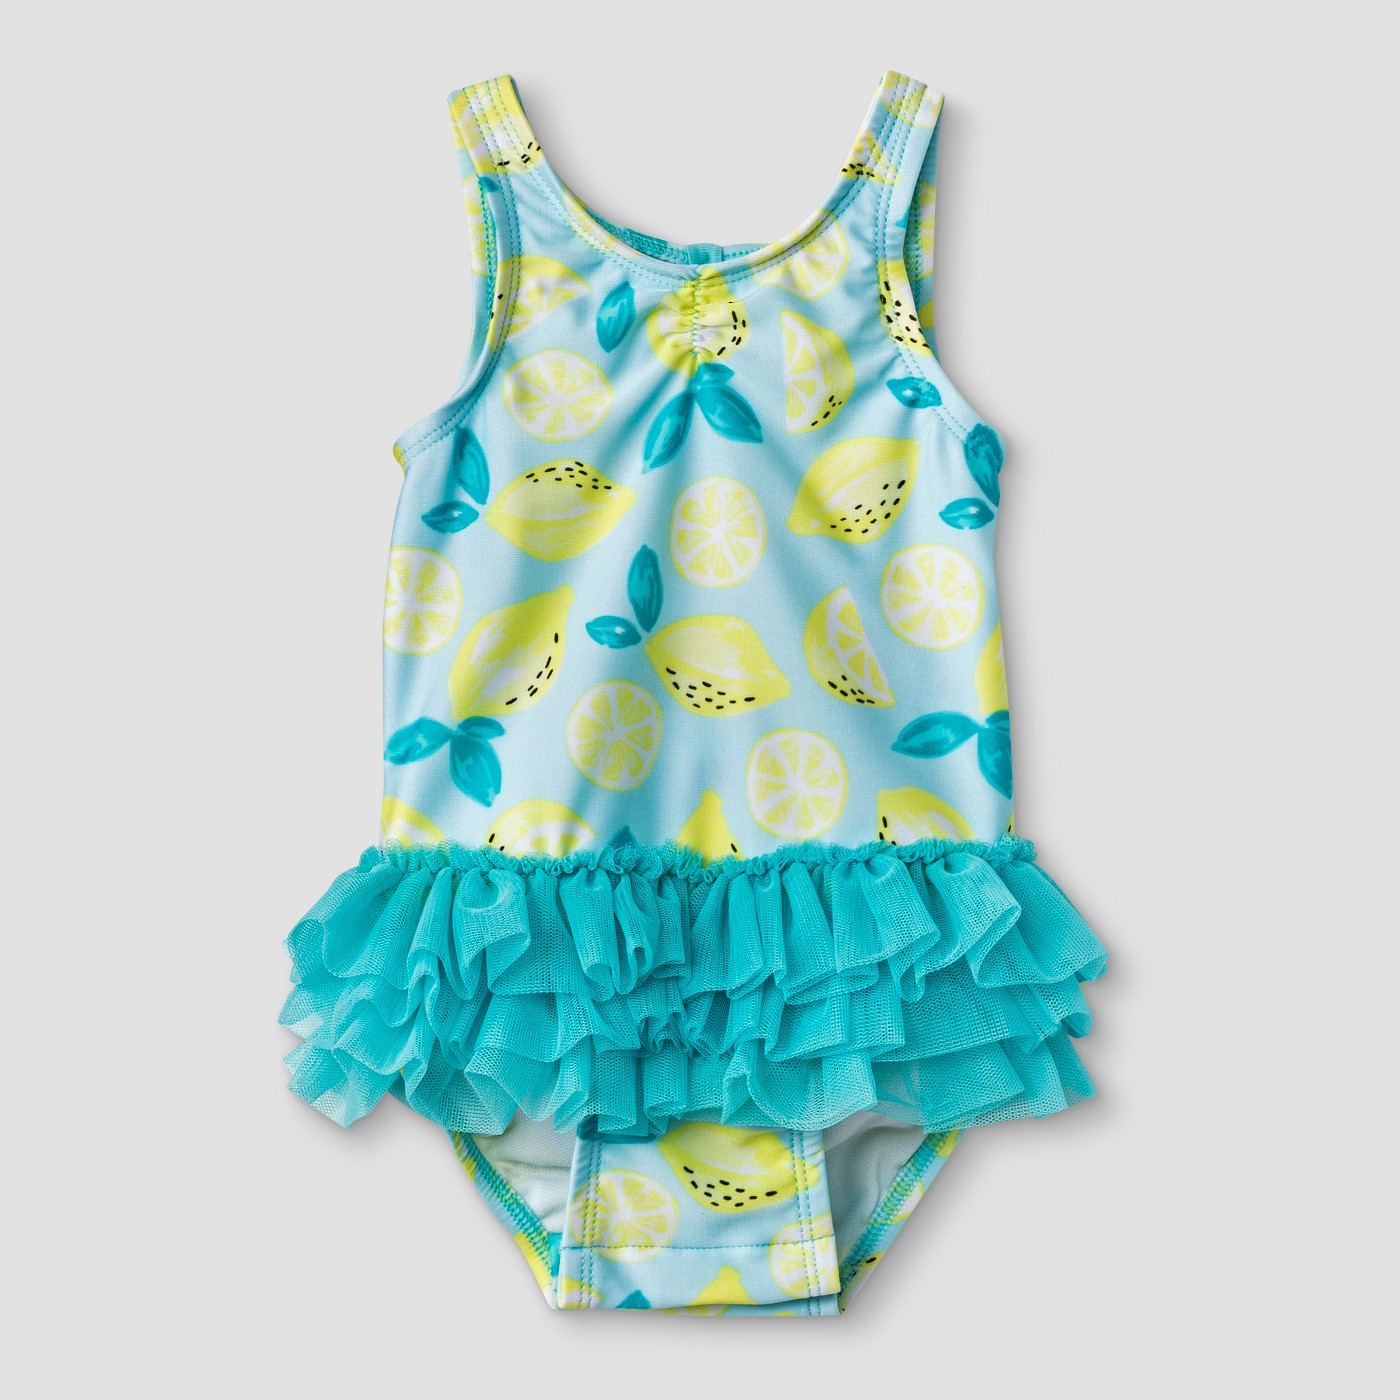 Baby Girls' Tutu One Piece Swimsuit - Cat & Jack™ Turquoise - image 1 of 2